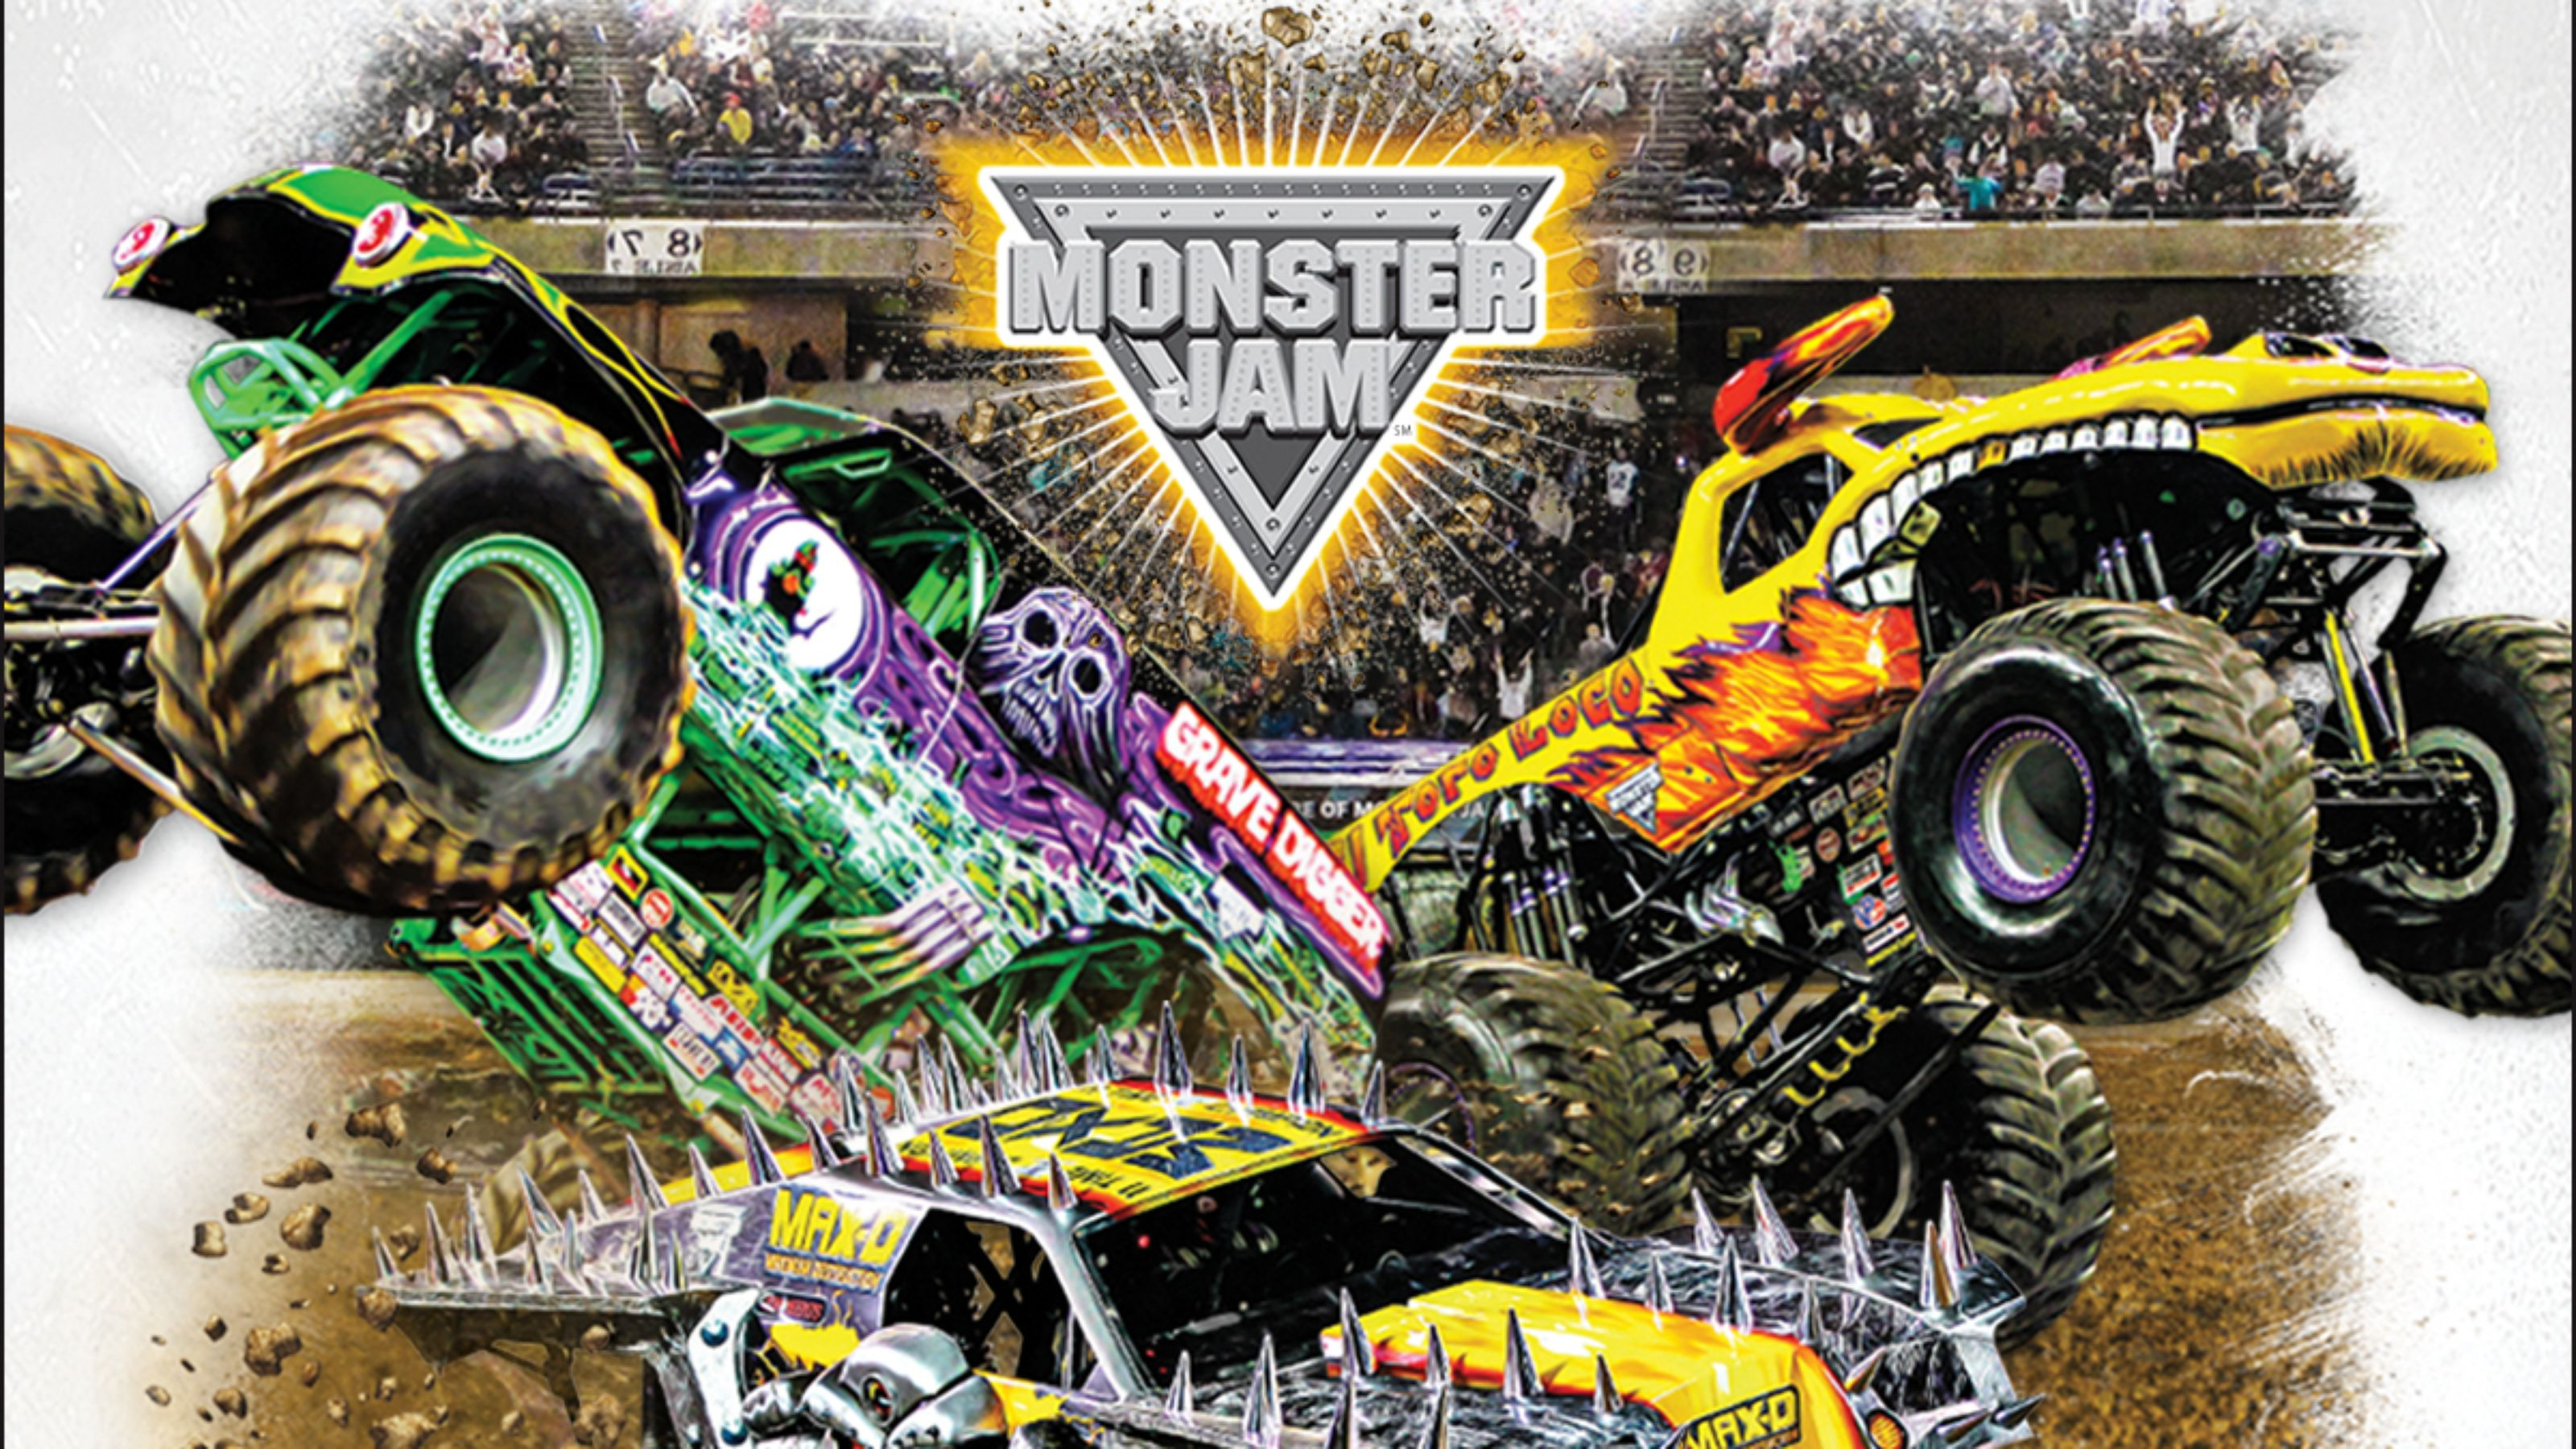 Enter to Win Tickets to Monster Jam at Royal Farms Arena! {CONTEST ENDED}